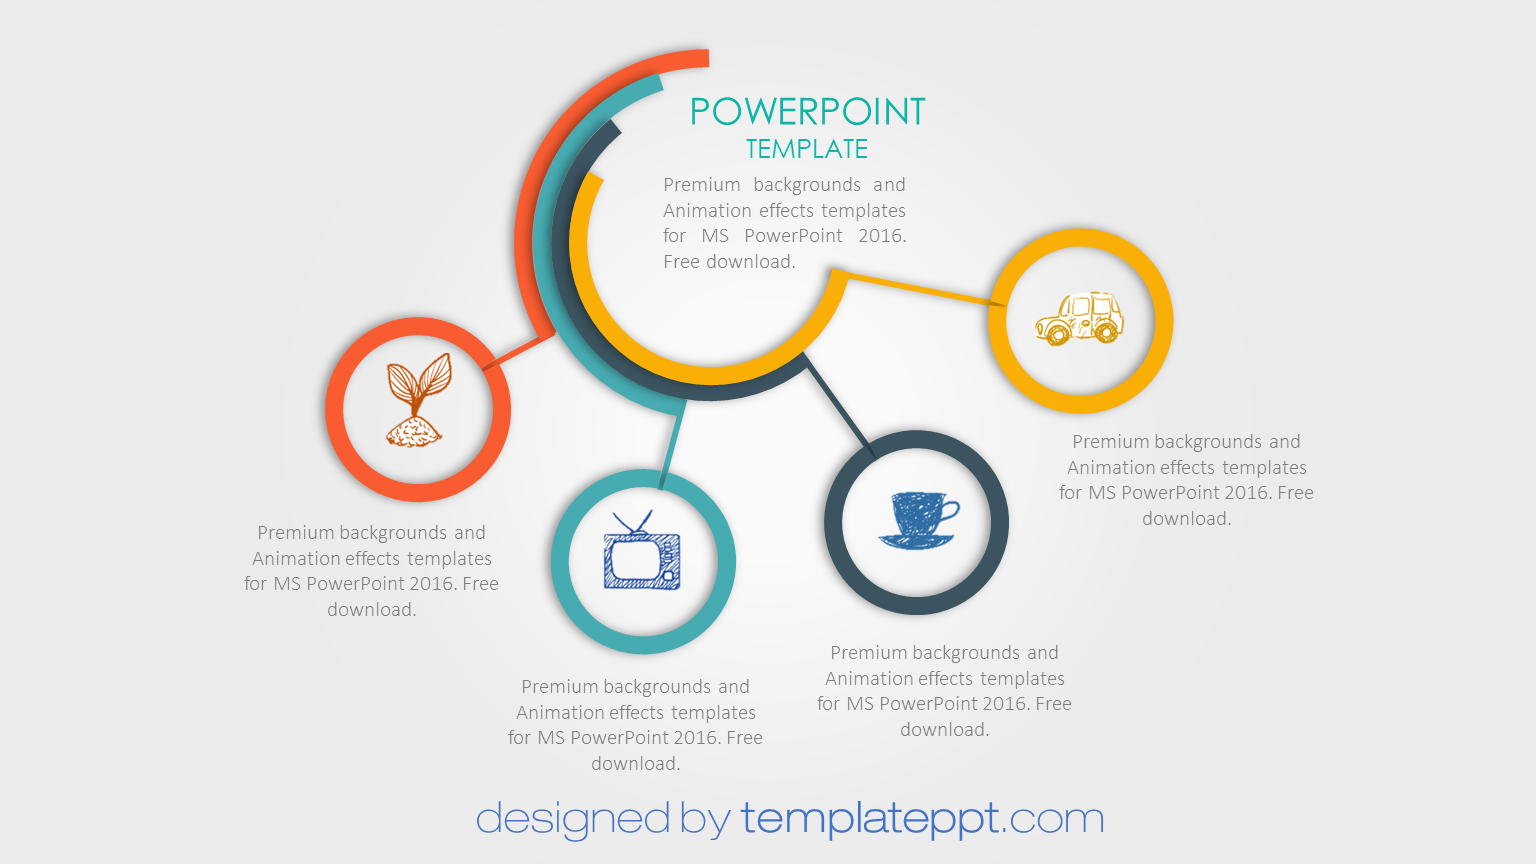 Professional powerpoint templates free download 2016 powerpoint professional powerpoint templates free download 2016 toneelgroepblik Images